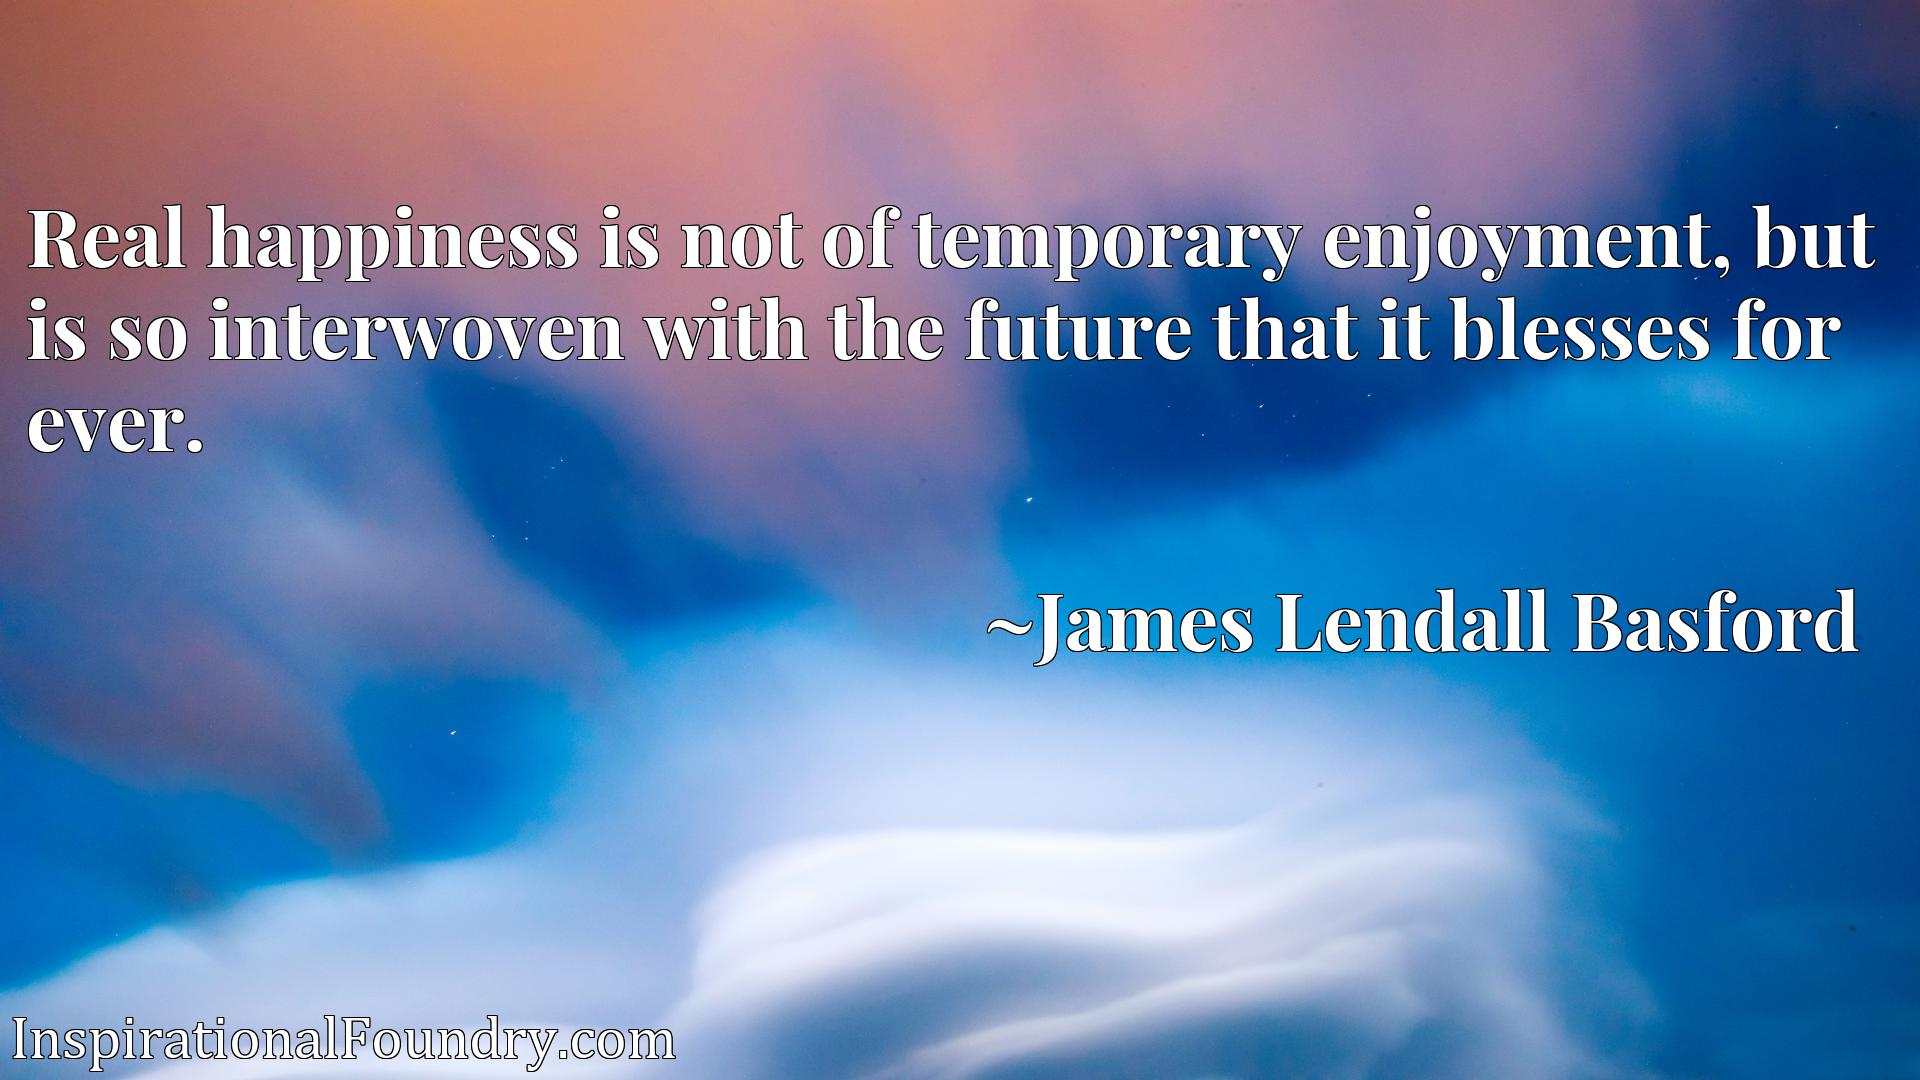 Quote Picture :Real happiness is not of temporary enjoyment, but is so interwoven with the future that it blesses for ever.